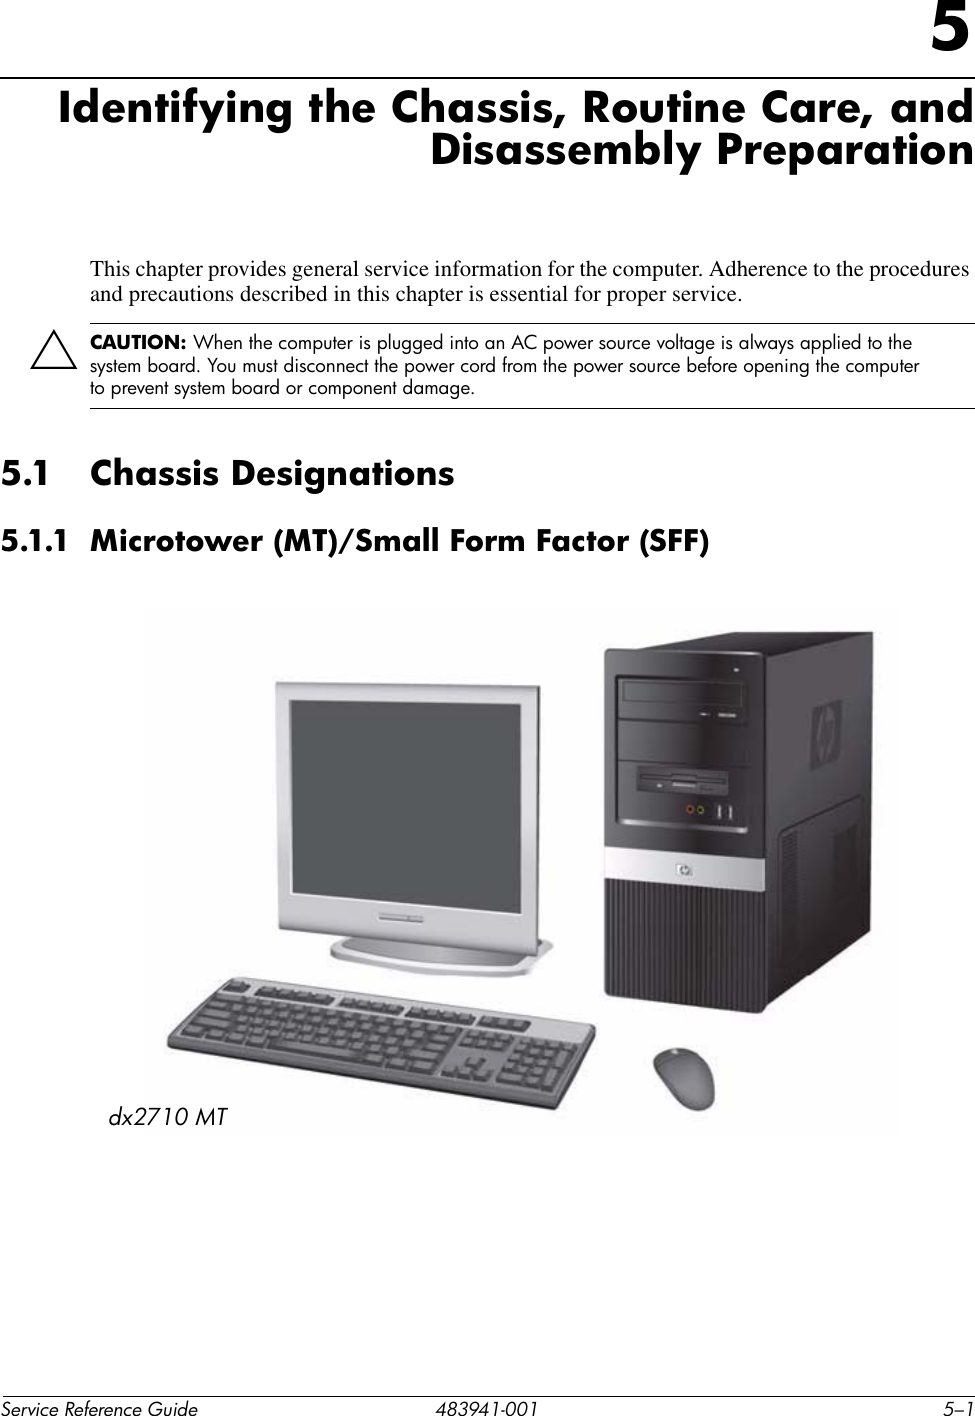 HP COMPAQ DX2710 SFF DRIVERS FOR WINDOWS